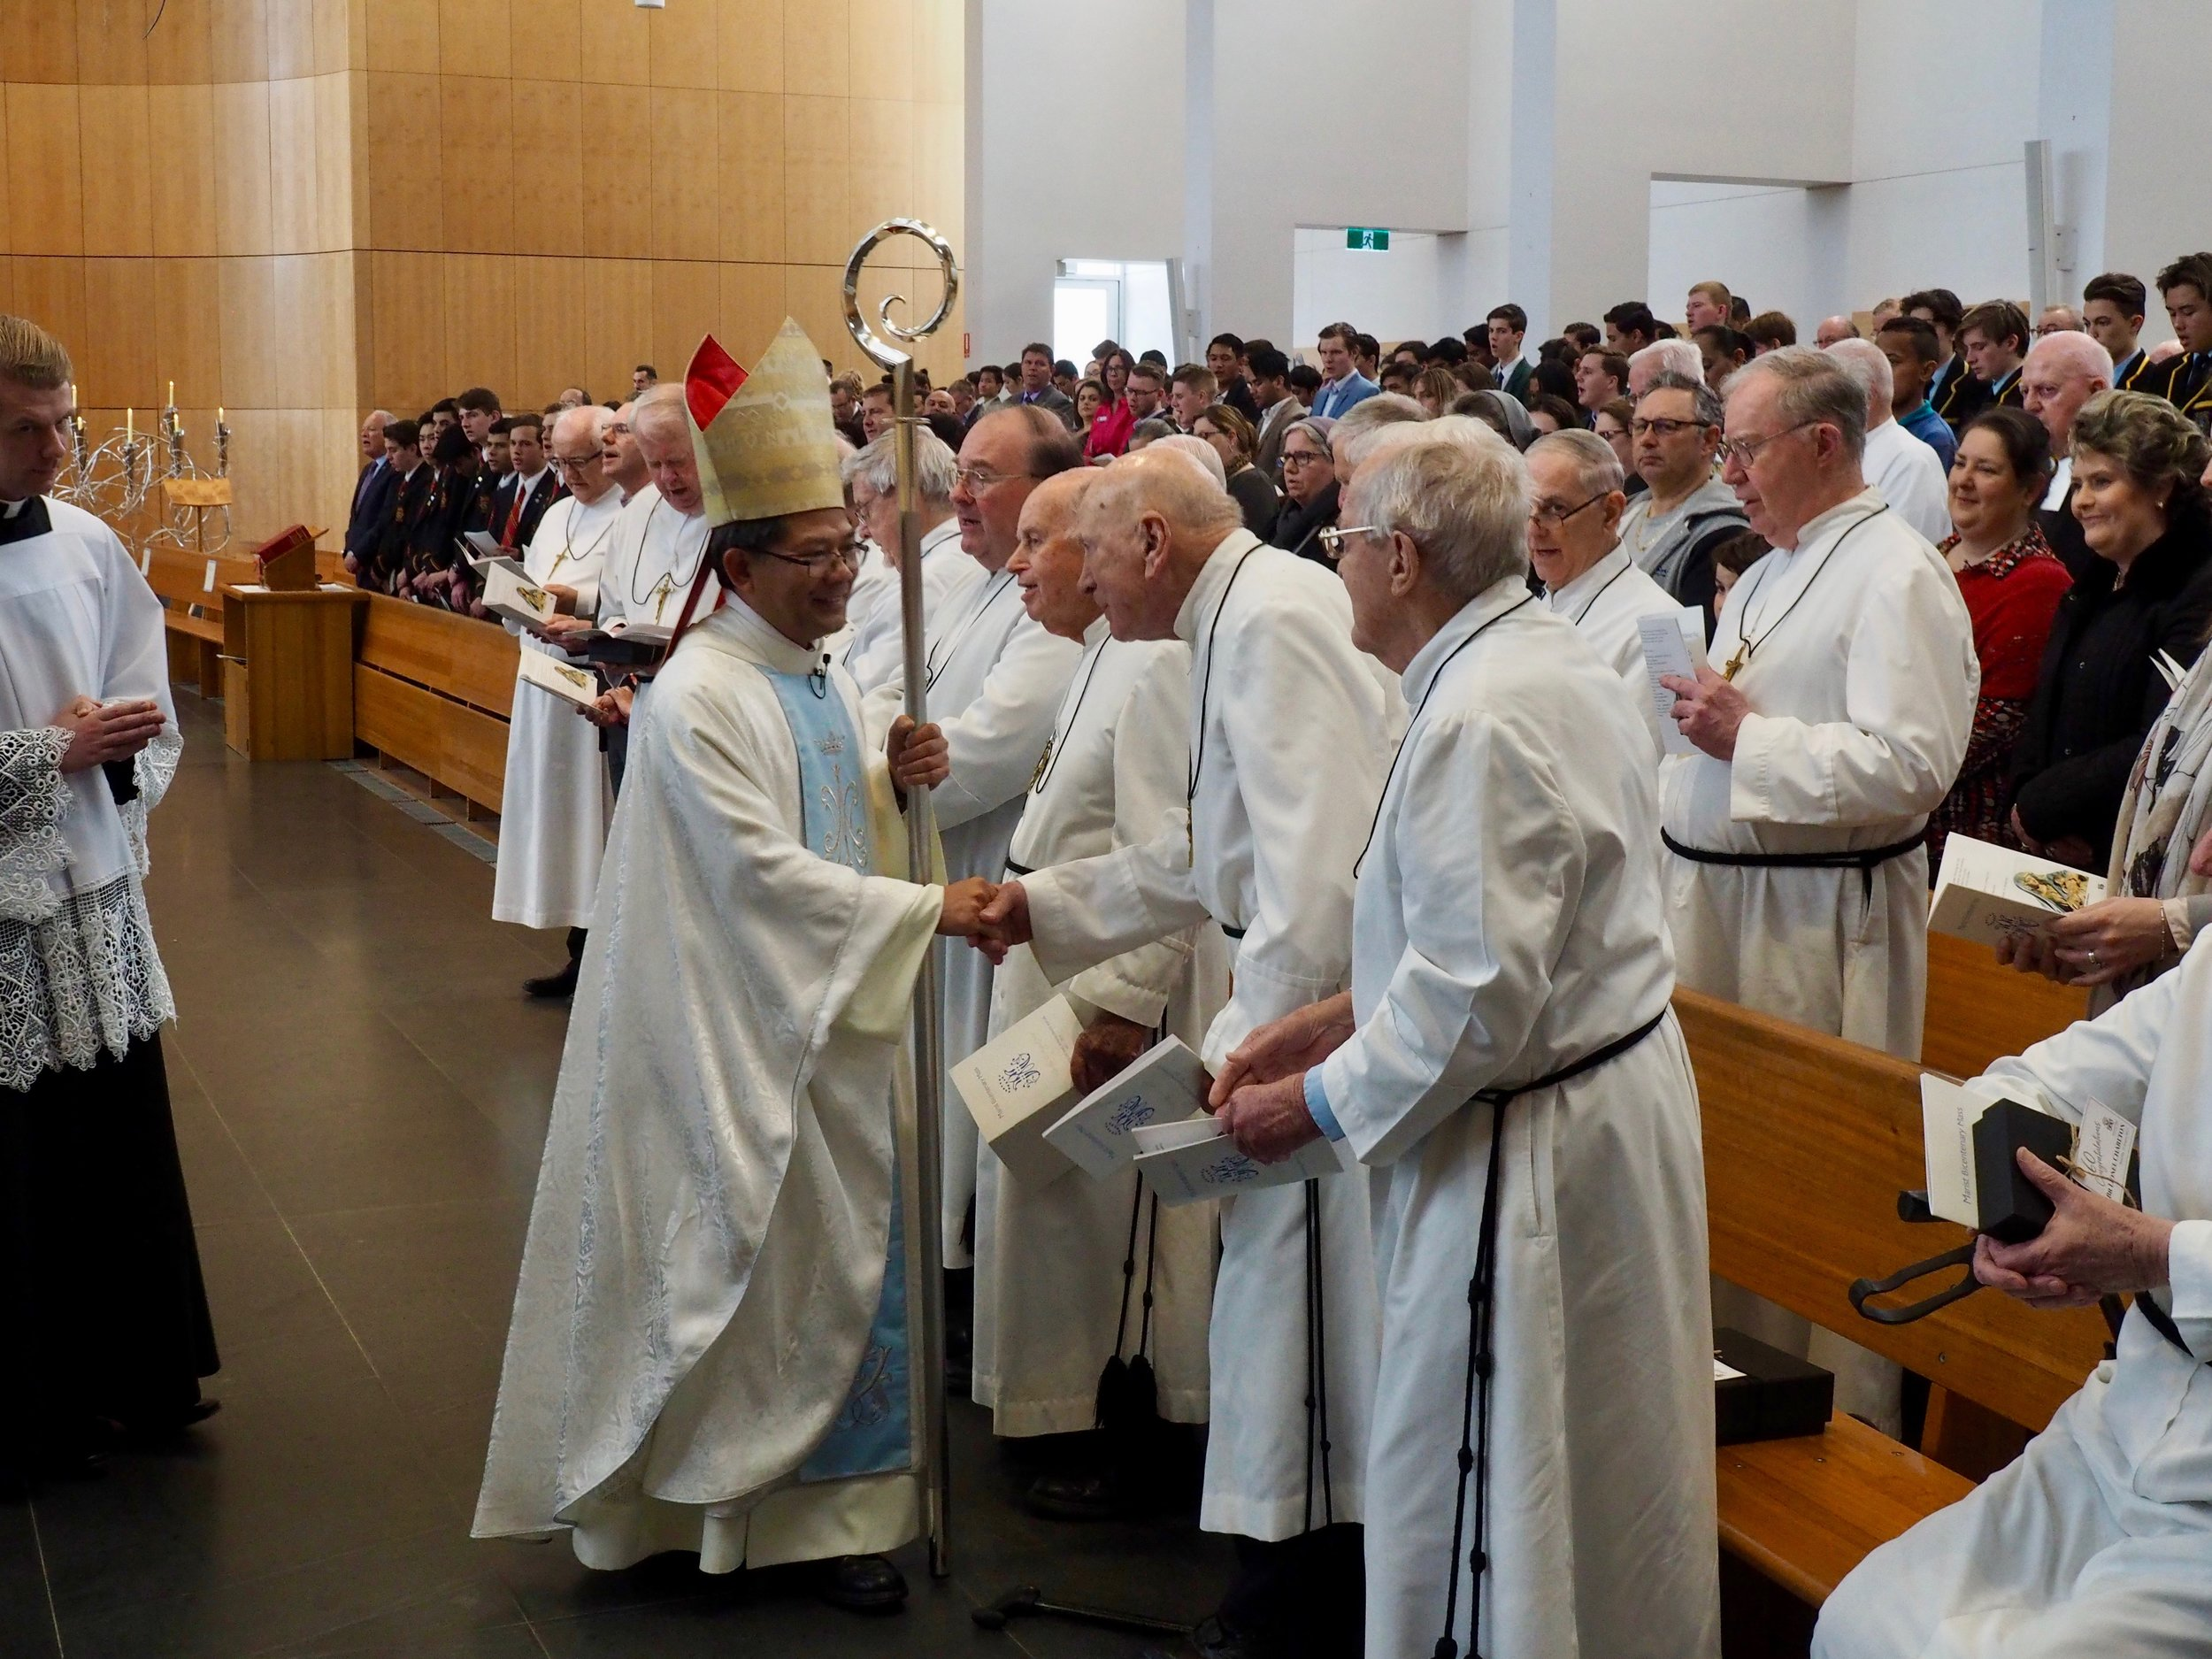 Bicentenary Mass Sydney 12 Aug 2017 Photos by Paul Harris 00112.jpg